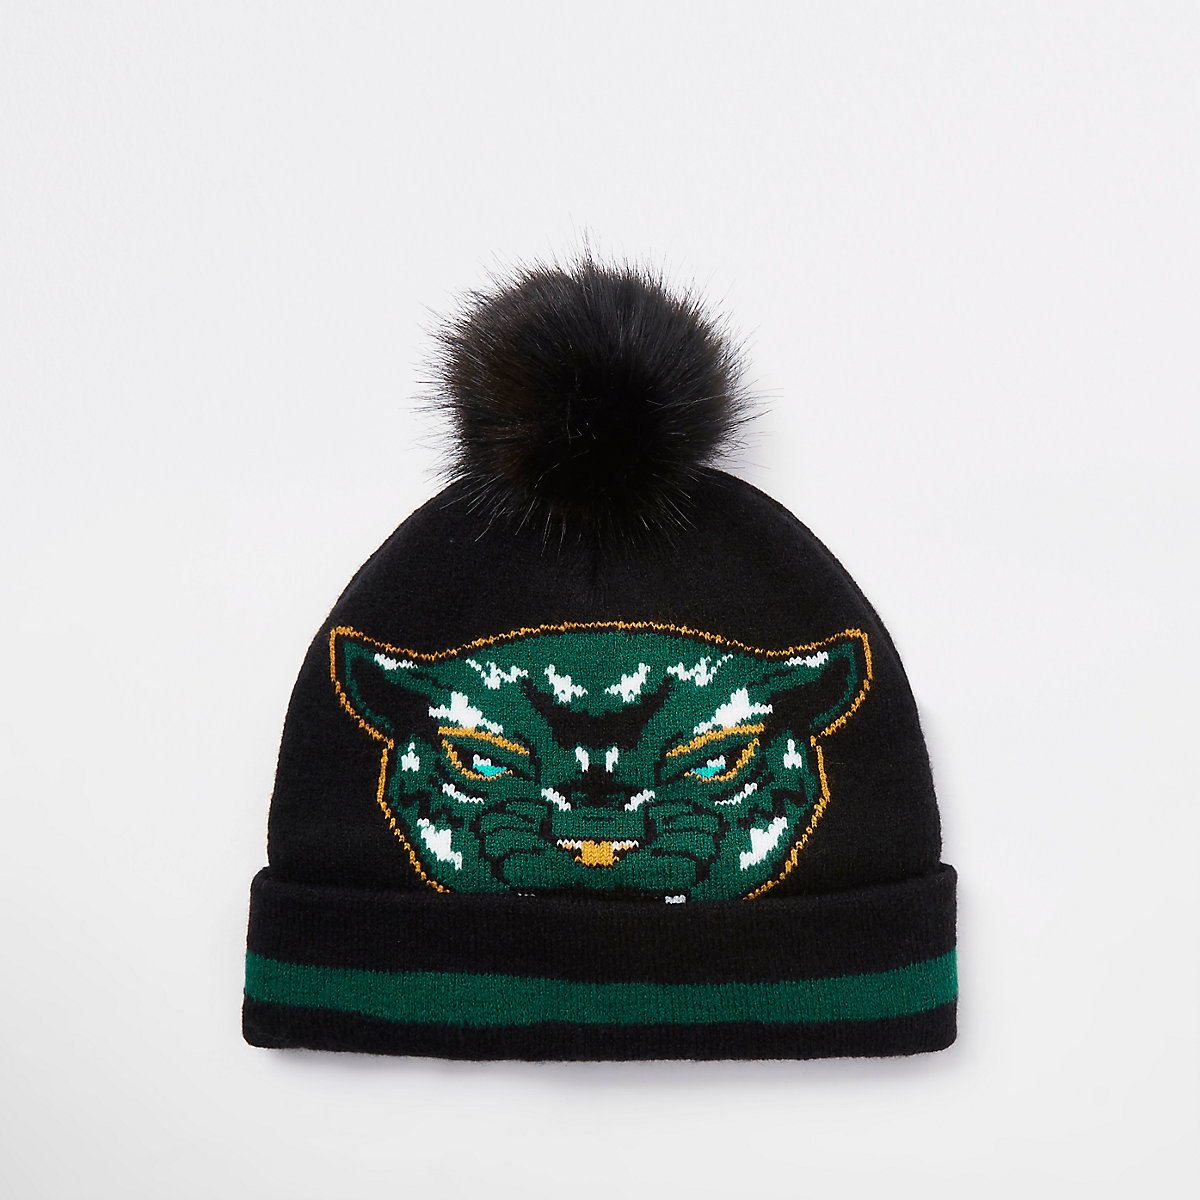 Boys Black Panther faux fur beanie hat - Hats - Accessories - boys ef13b533516